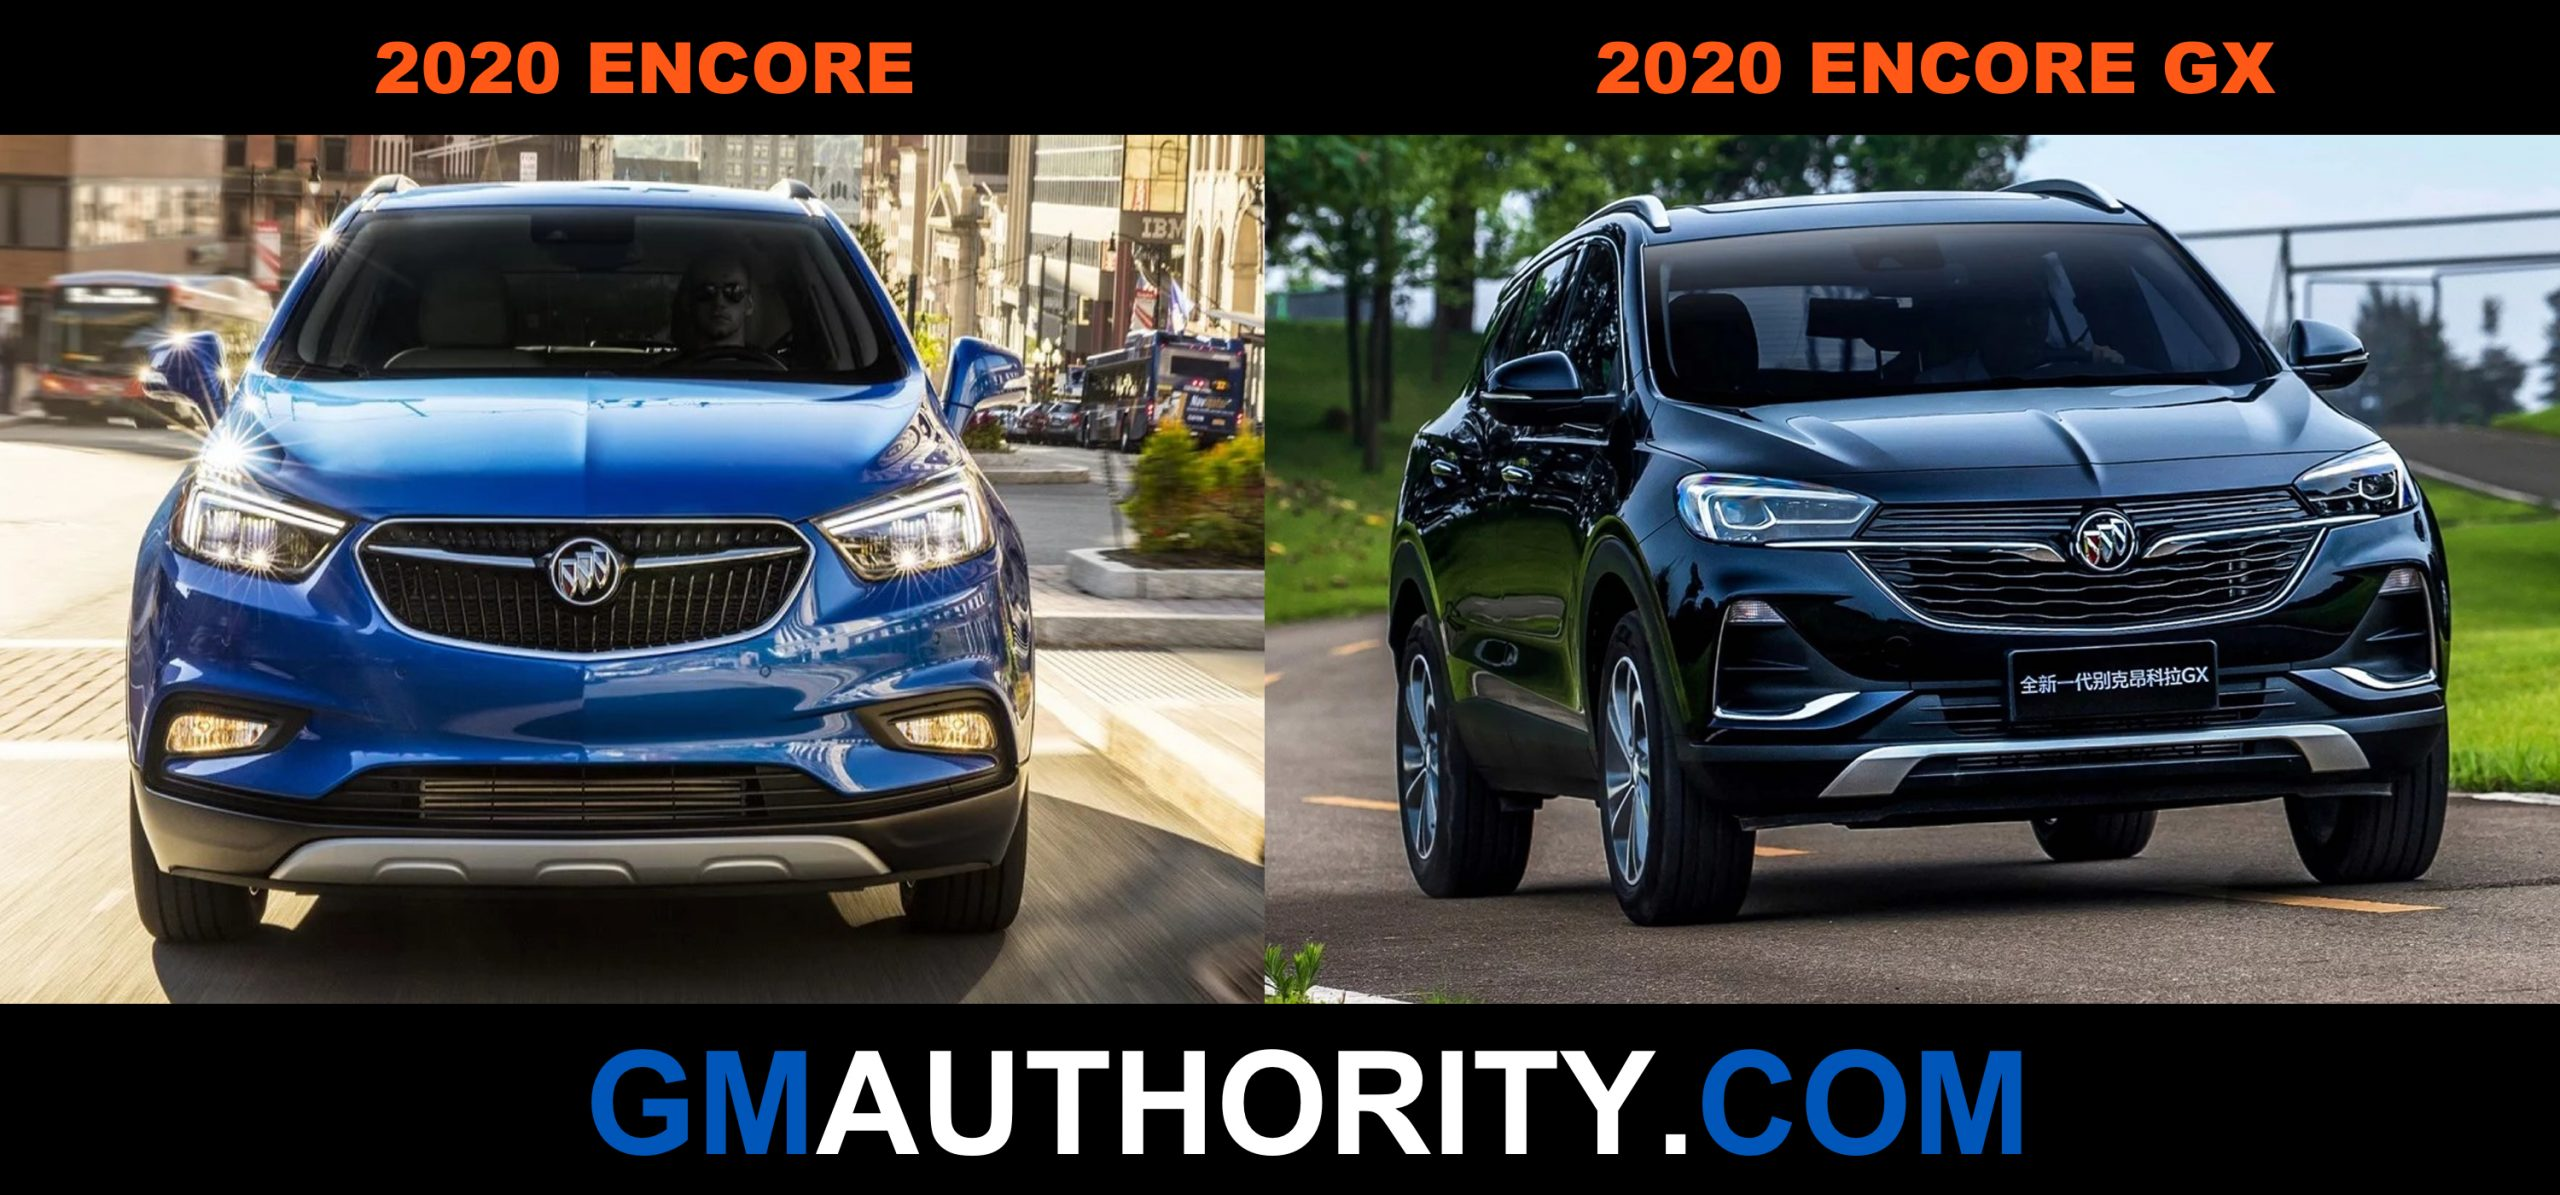 Buick Encore Vs. Buick Encore Gx: Visual Comparison | Gm 2021 Buick Encore Gx Build, Curb Weight, Cargo Space